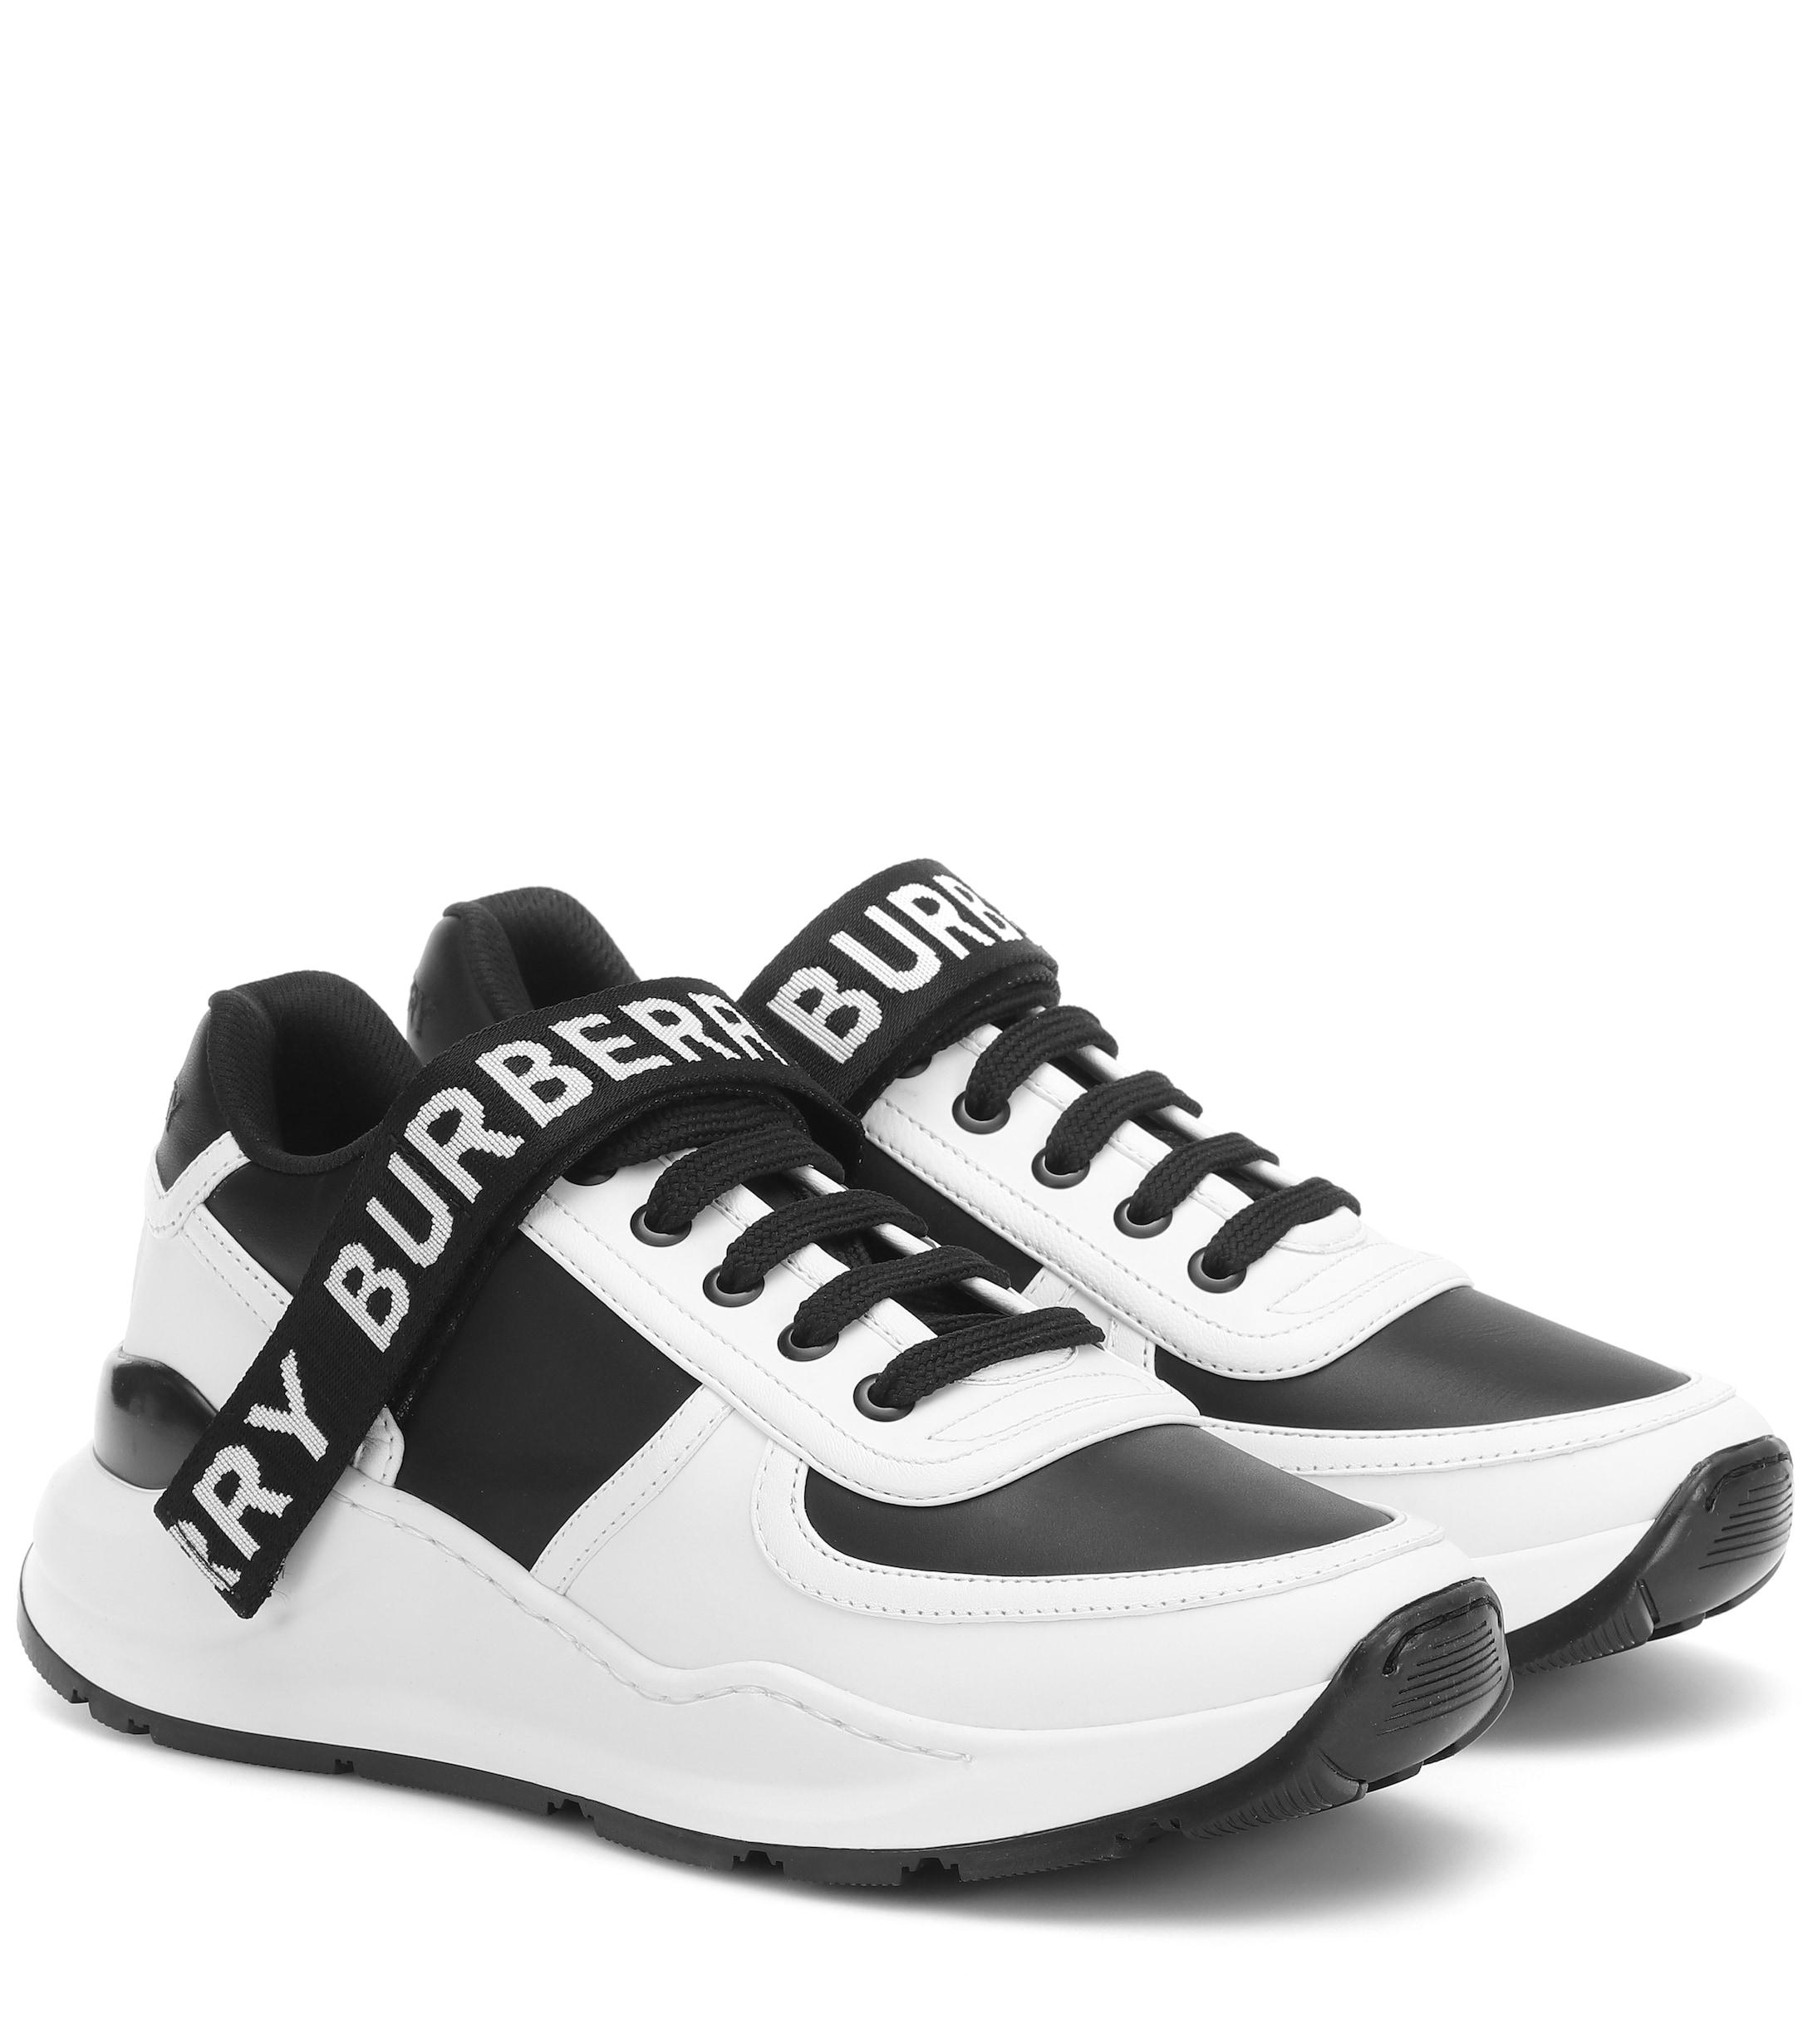 Burberry Ronnie Sneakers In White